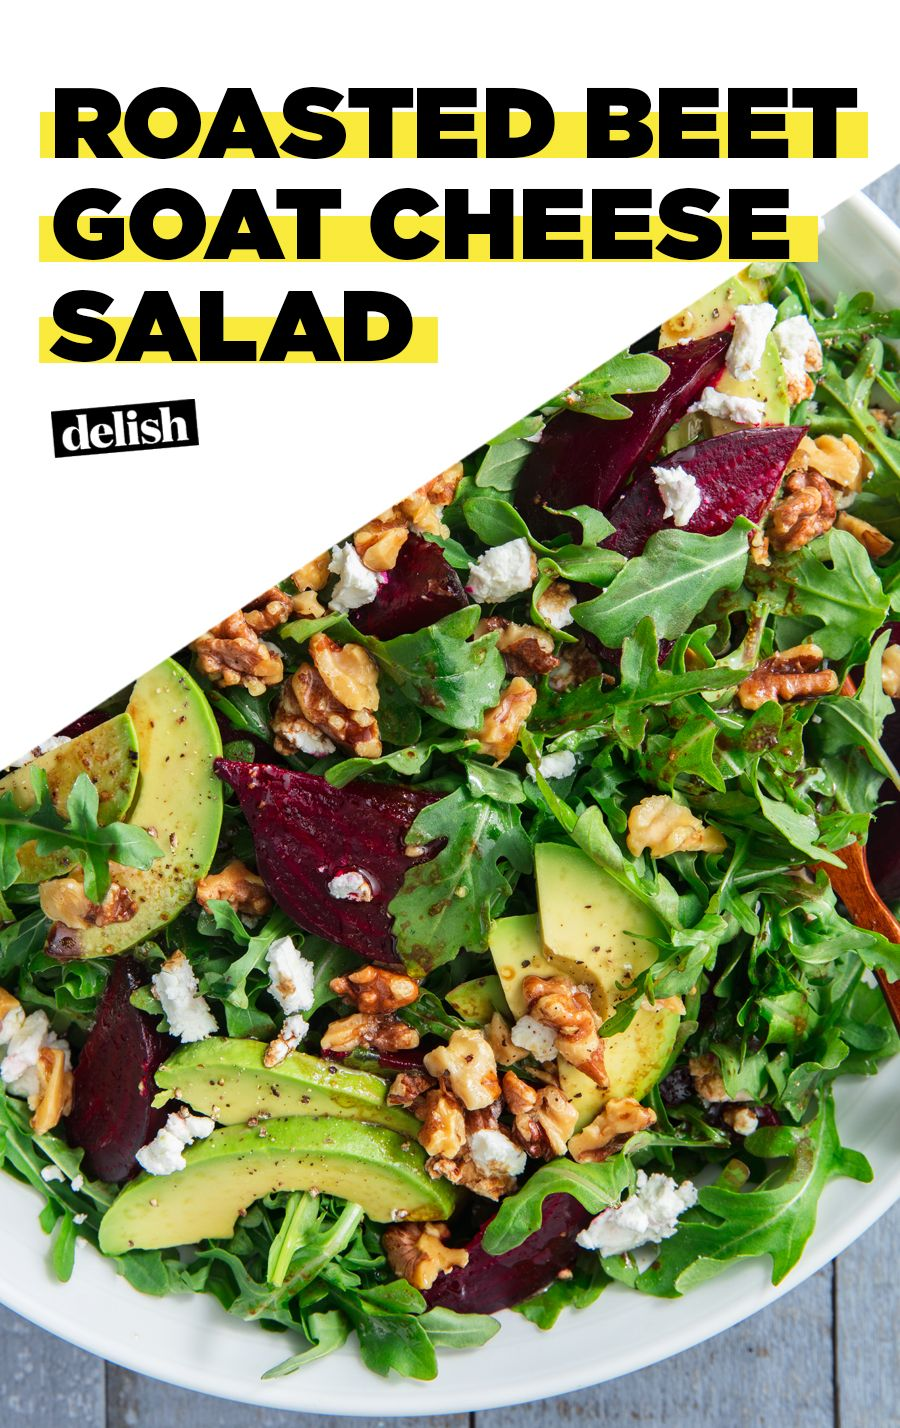 This Roasted Beet Goat Cheese Salad Is Addictive